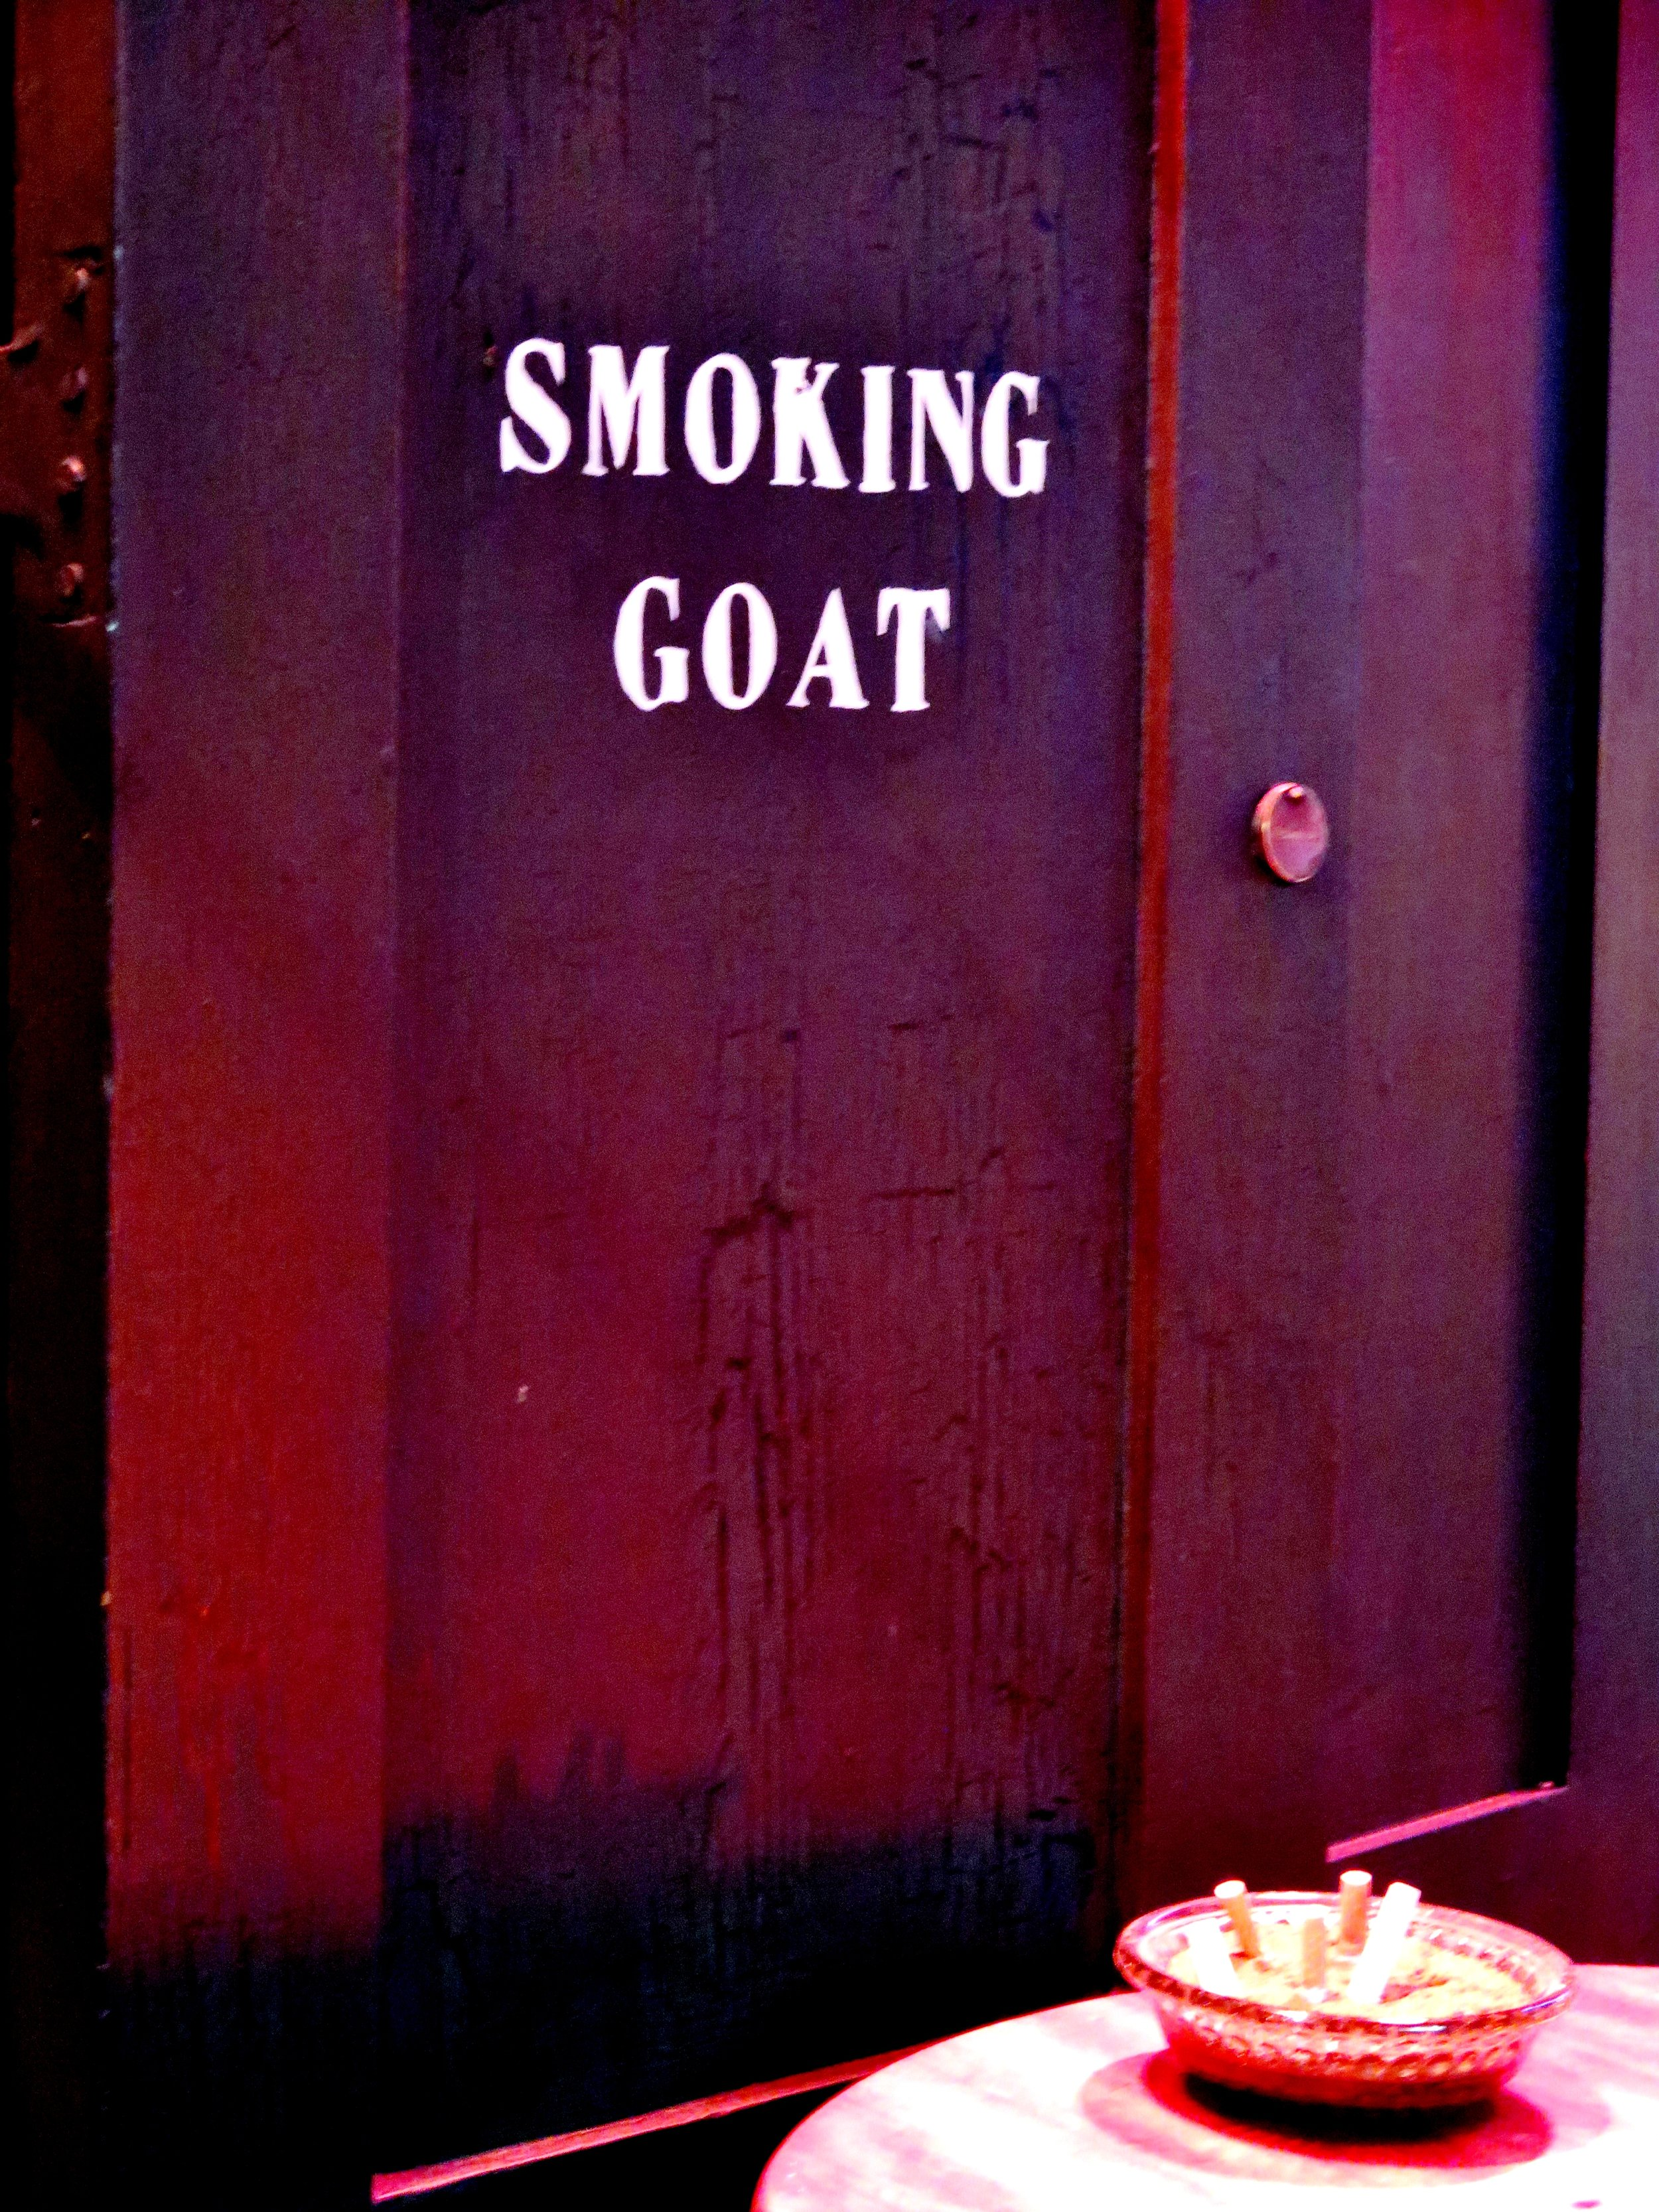 Smoking Goat - Restaurant Review